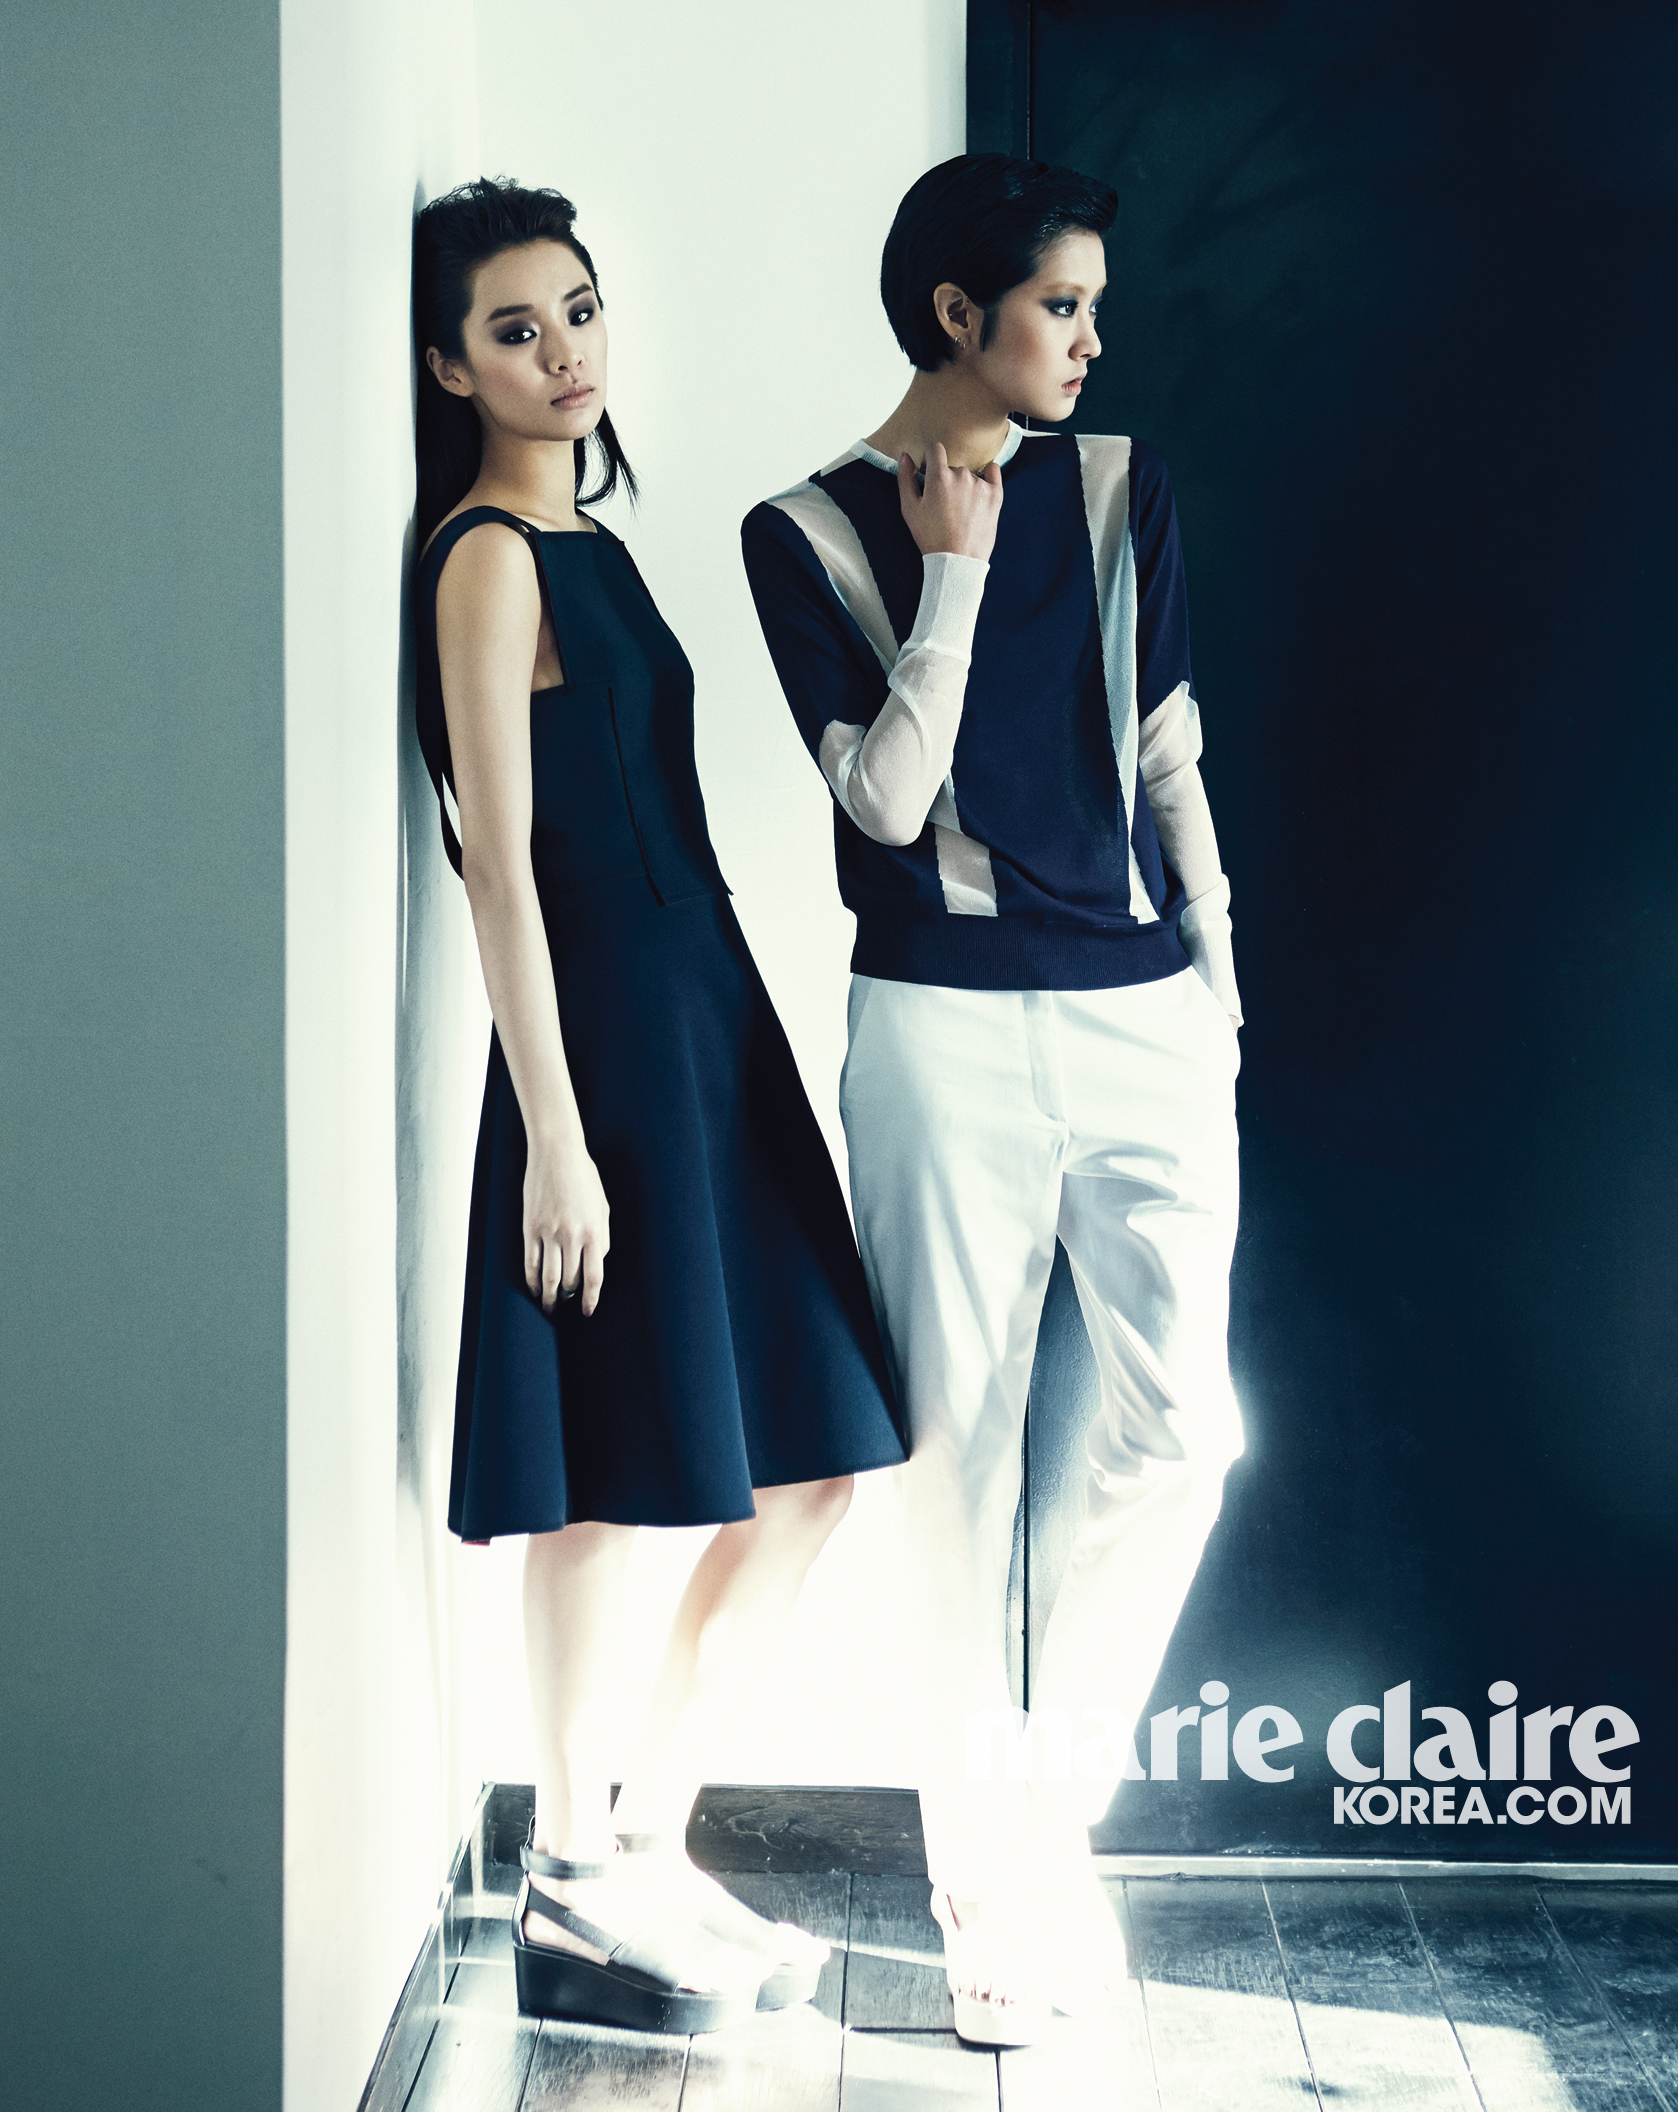 Marie Claire Feb 2014